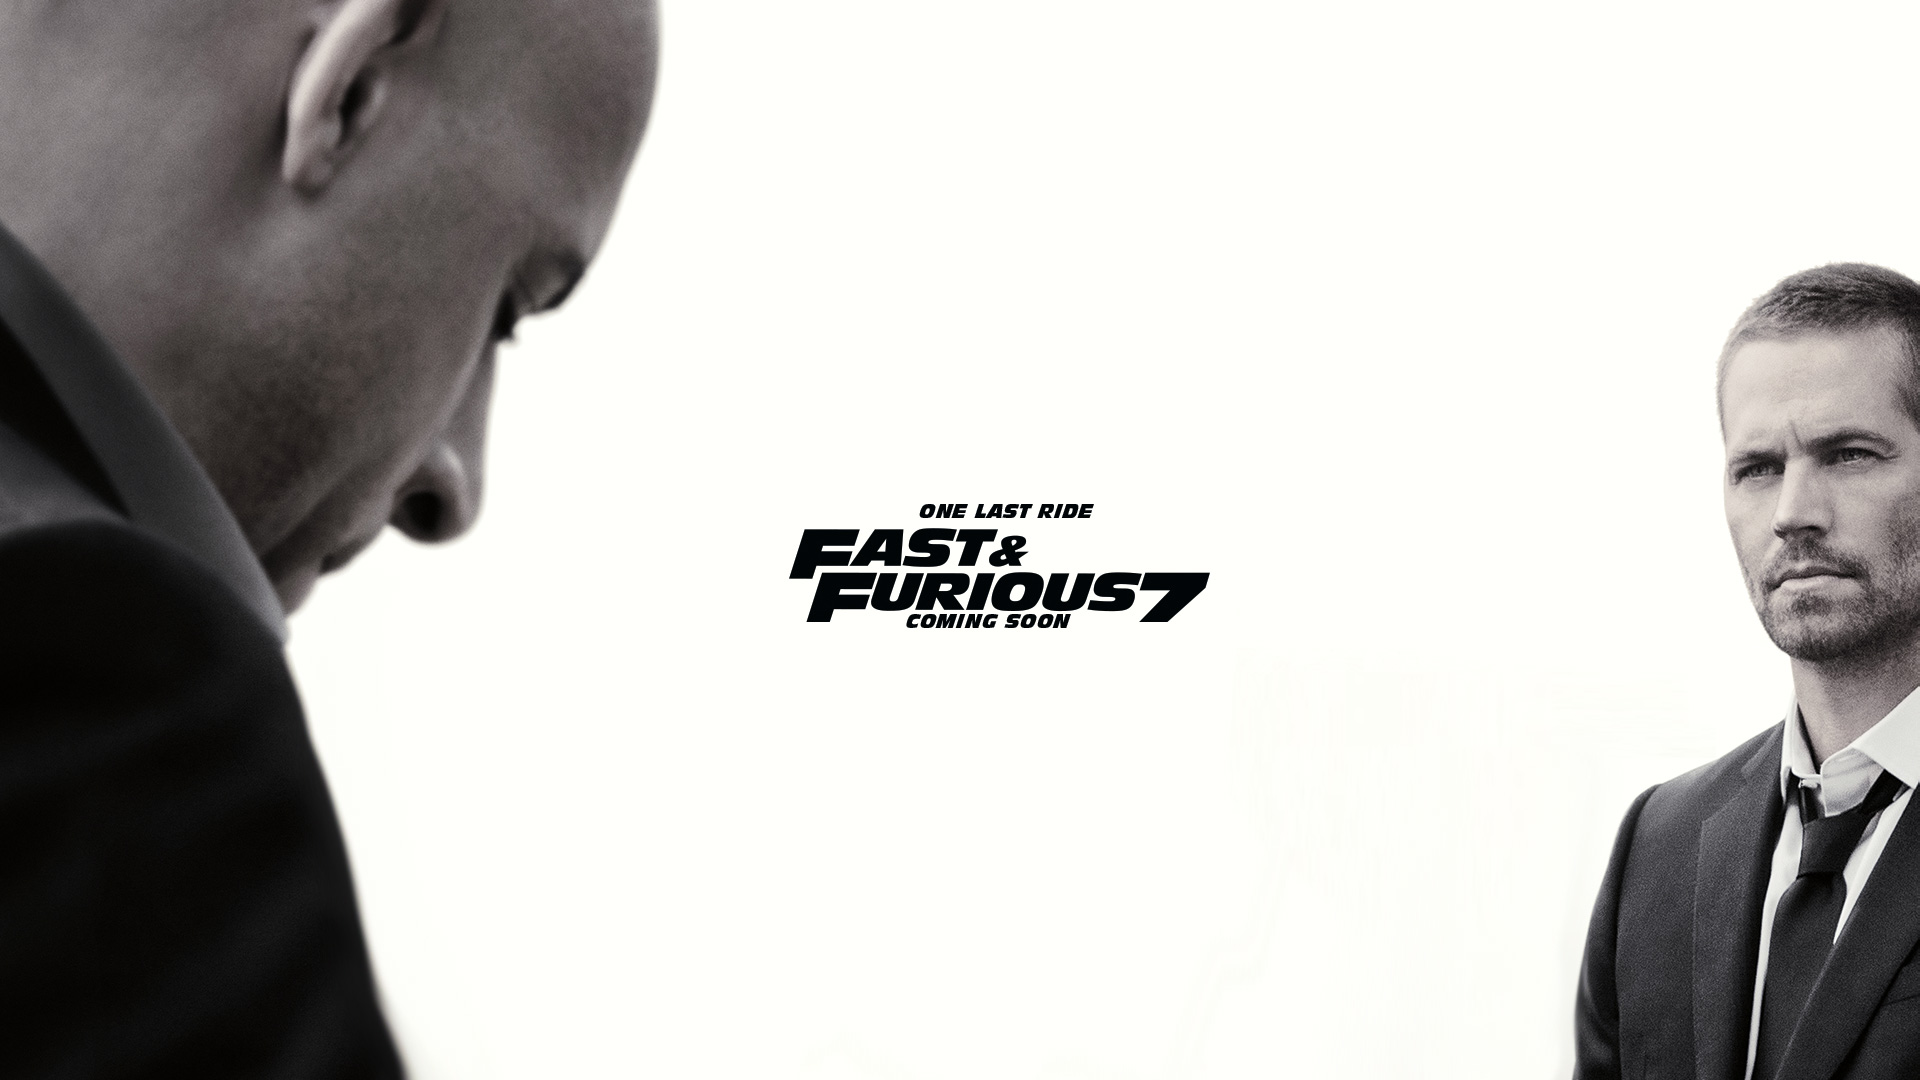 Fast And Furious 7 Wallpaper: Fast-furious-7-one-last-ride-wallpaper-3999.jpg